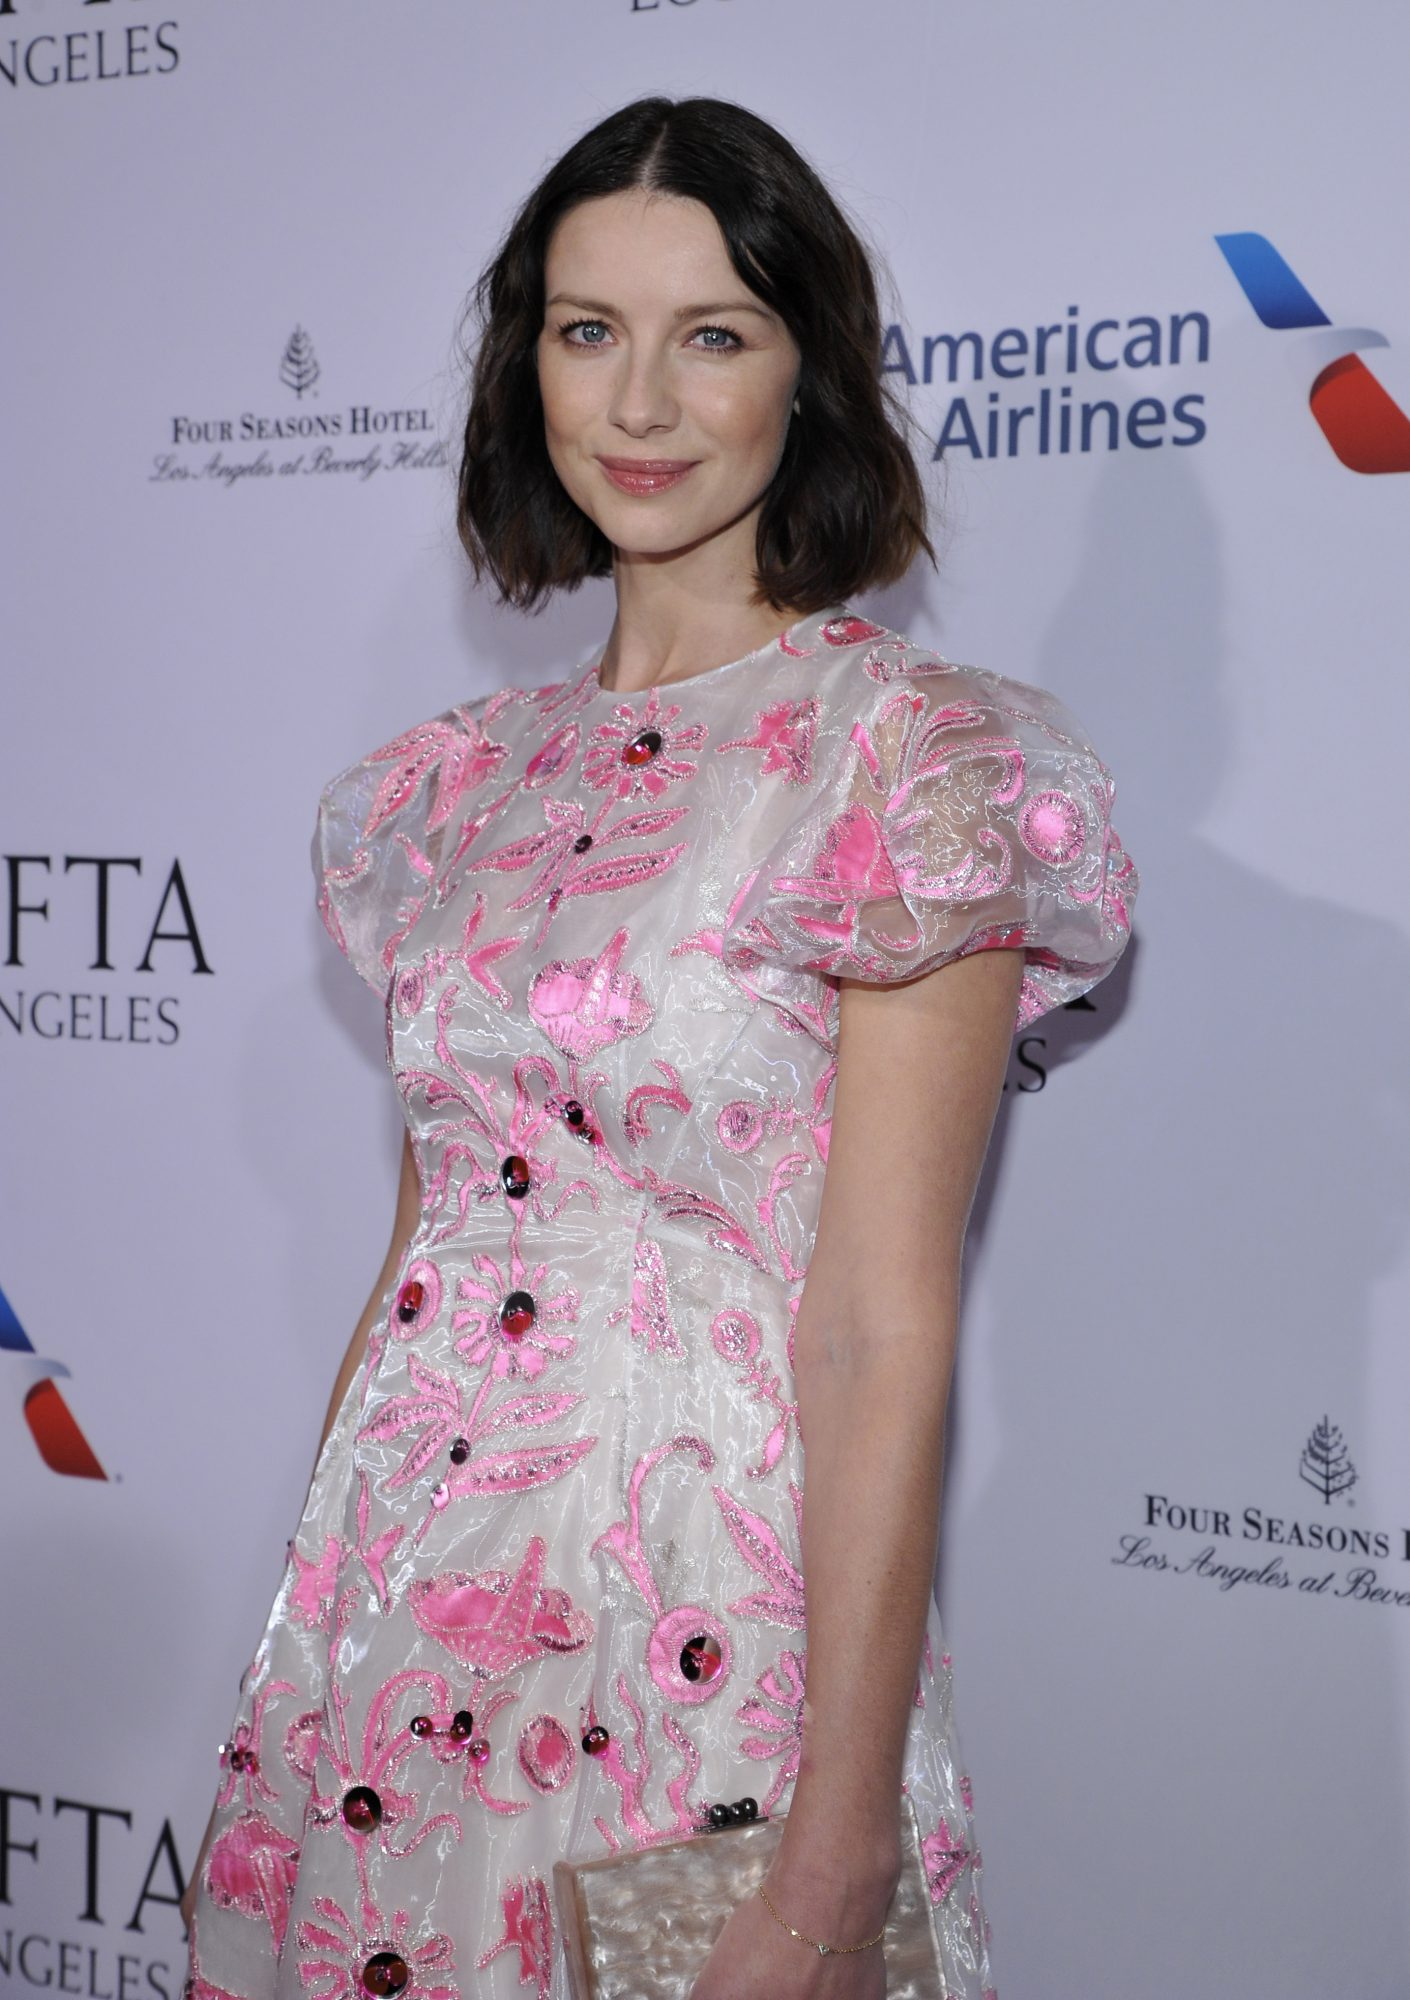 Who is caitriona balfe married to